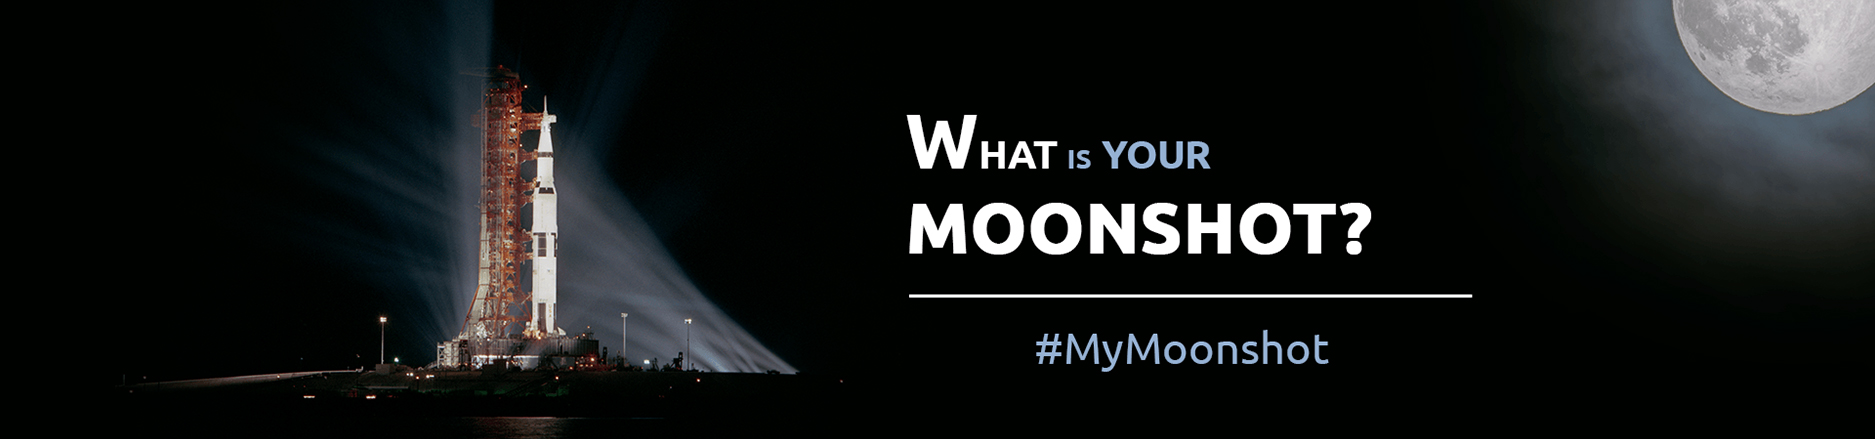 #MyMoonshot, an Ideas Crowdsourcing Story